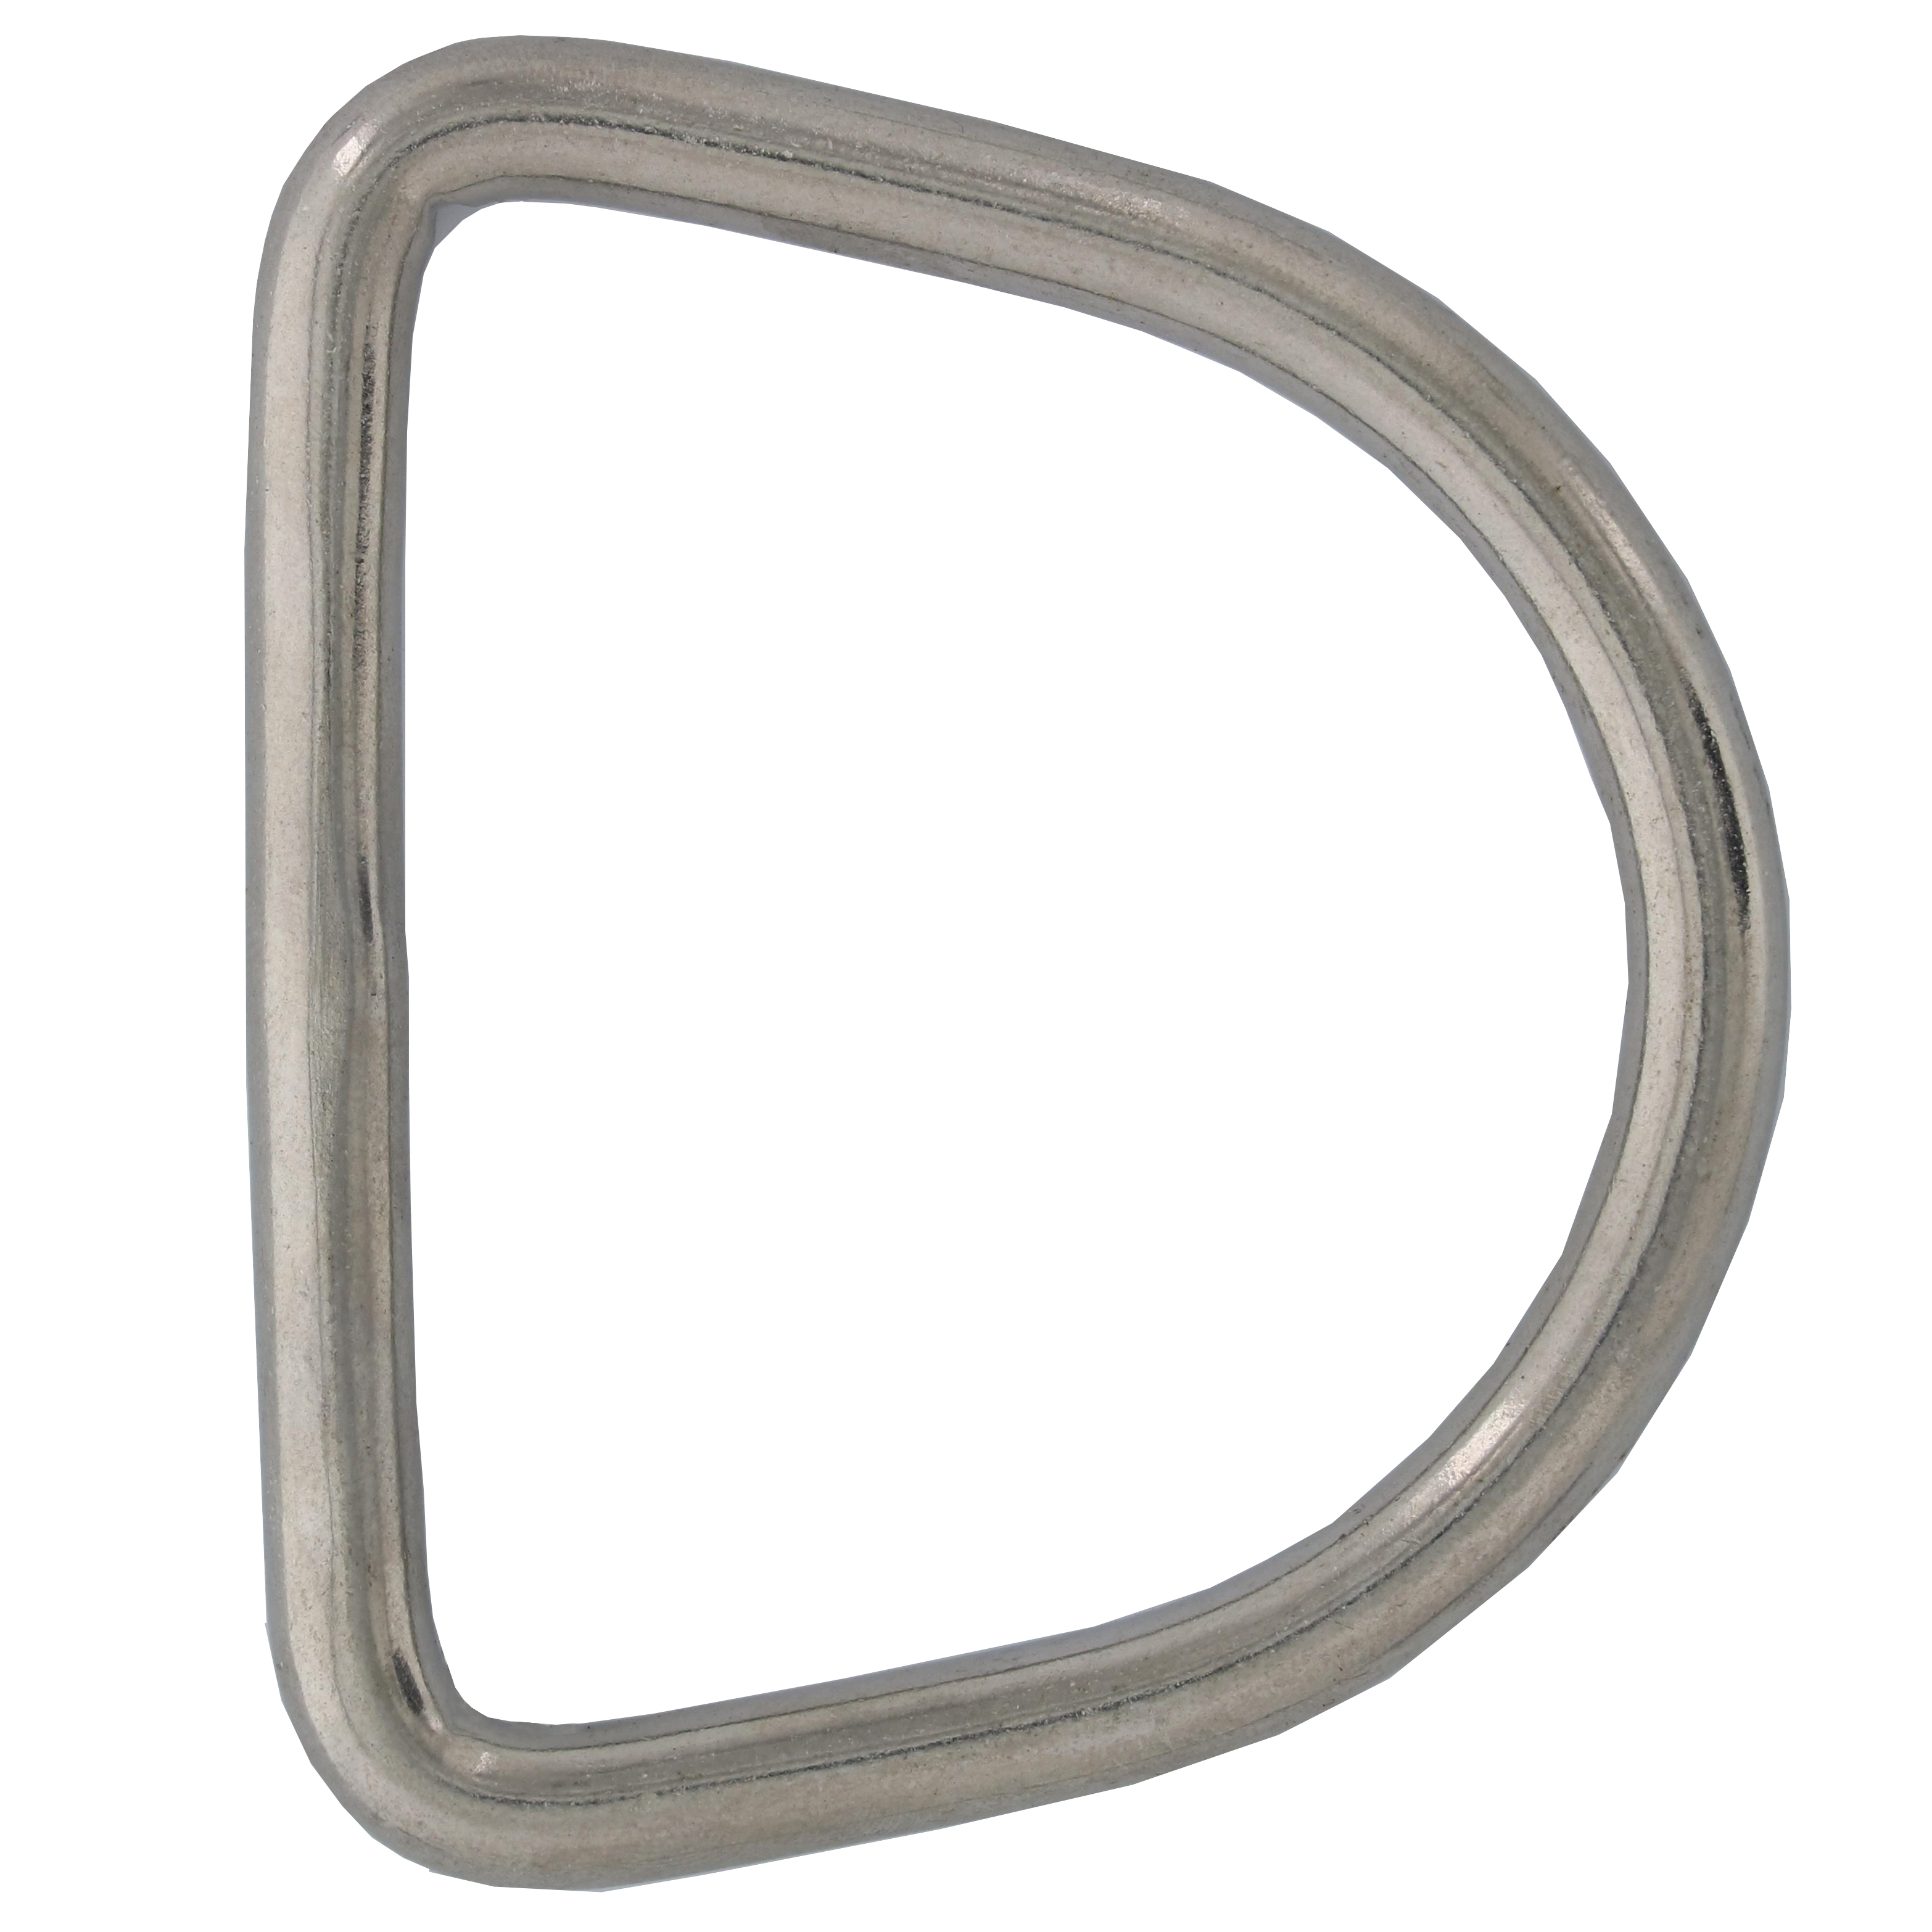 "5/16"" x 2-3/4"" Stainless Steel D Ring Image 1"